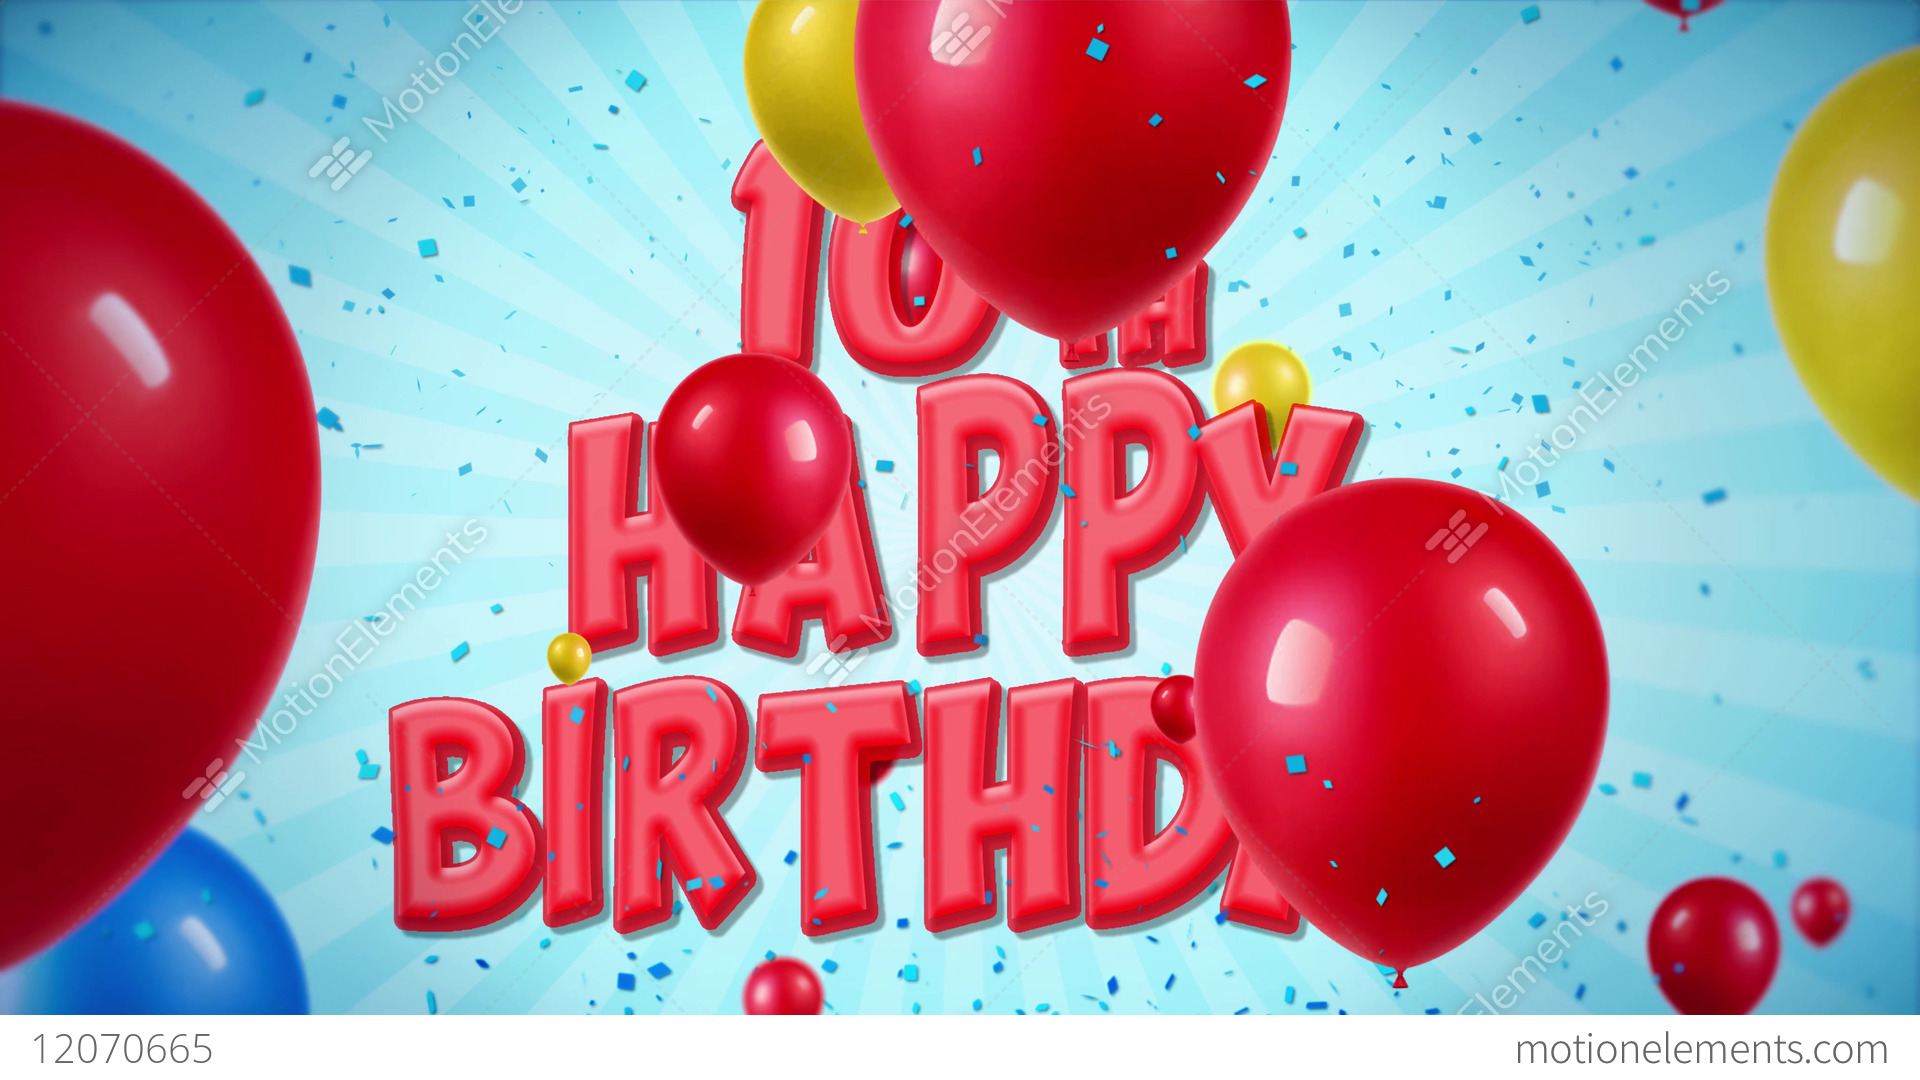 10th Happy Birthday Greeting And Wishes On Balloons Stock Video